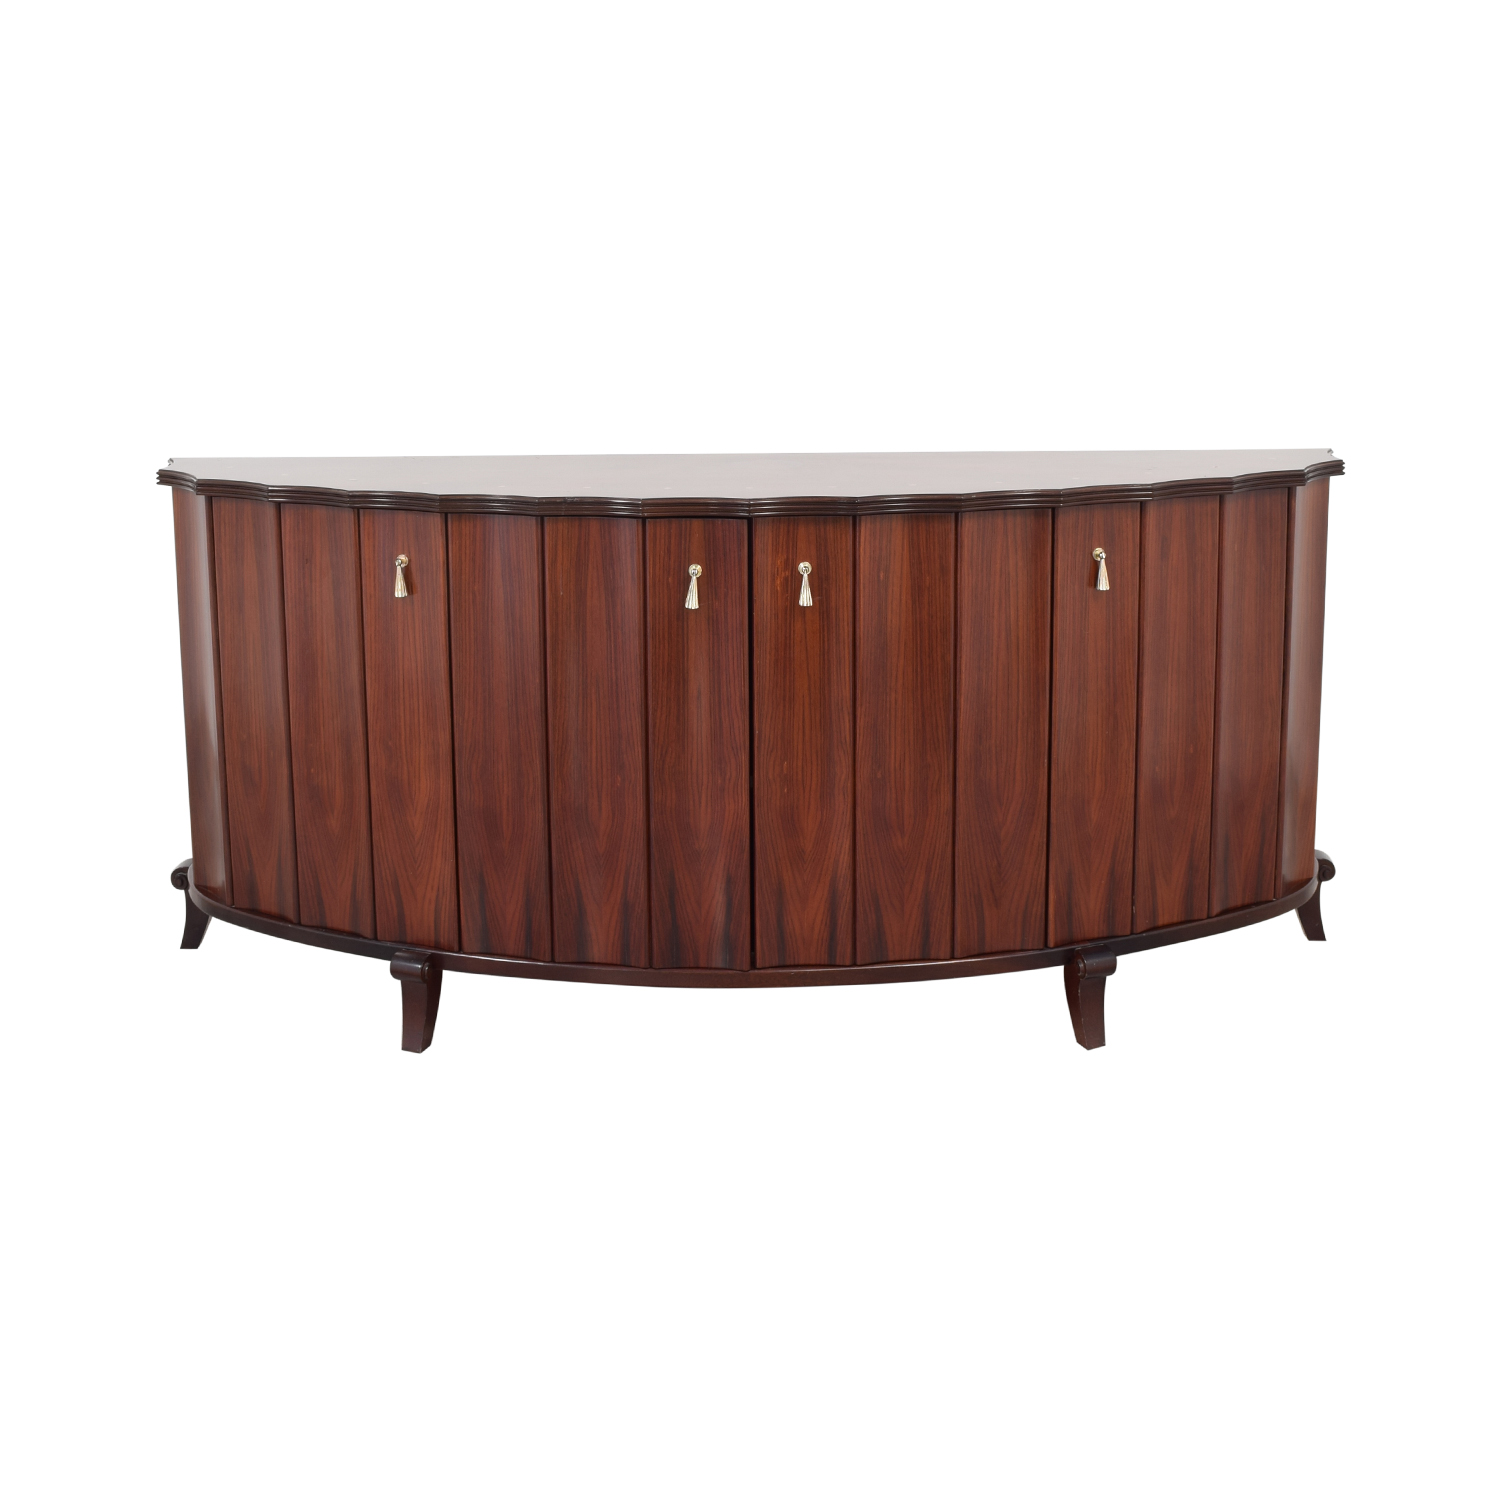 Four Door Cabinet Sideboard on sale